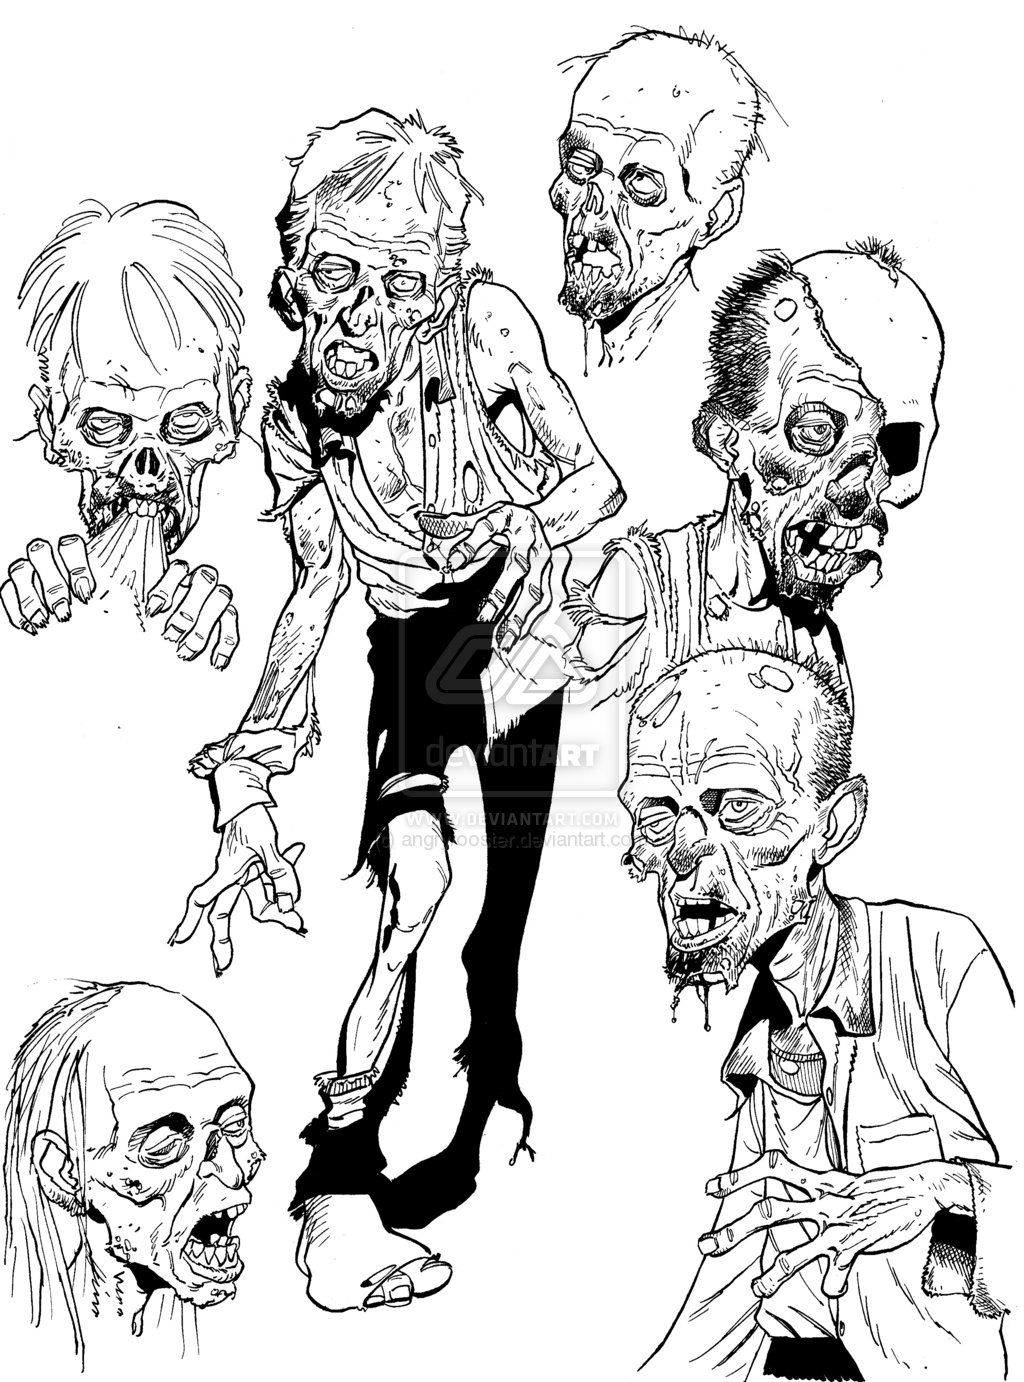 Adult Best Scary Zombie Coloring Pages Images beauty scary zombie coloring pages az 1000 images about on pinterest for images